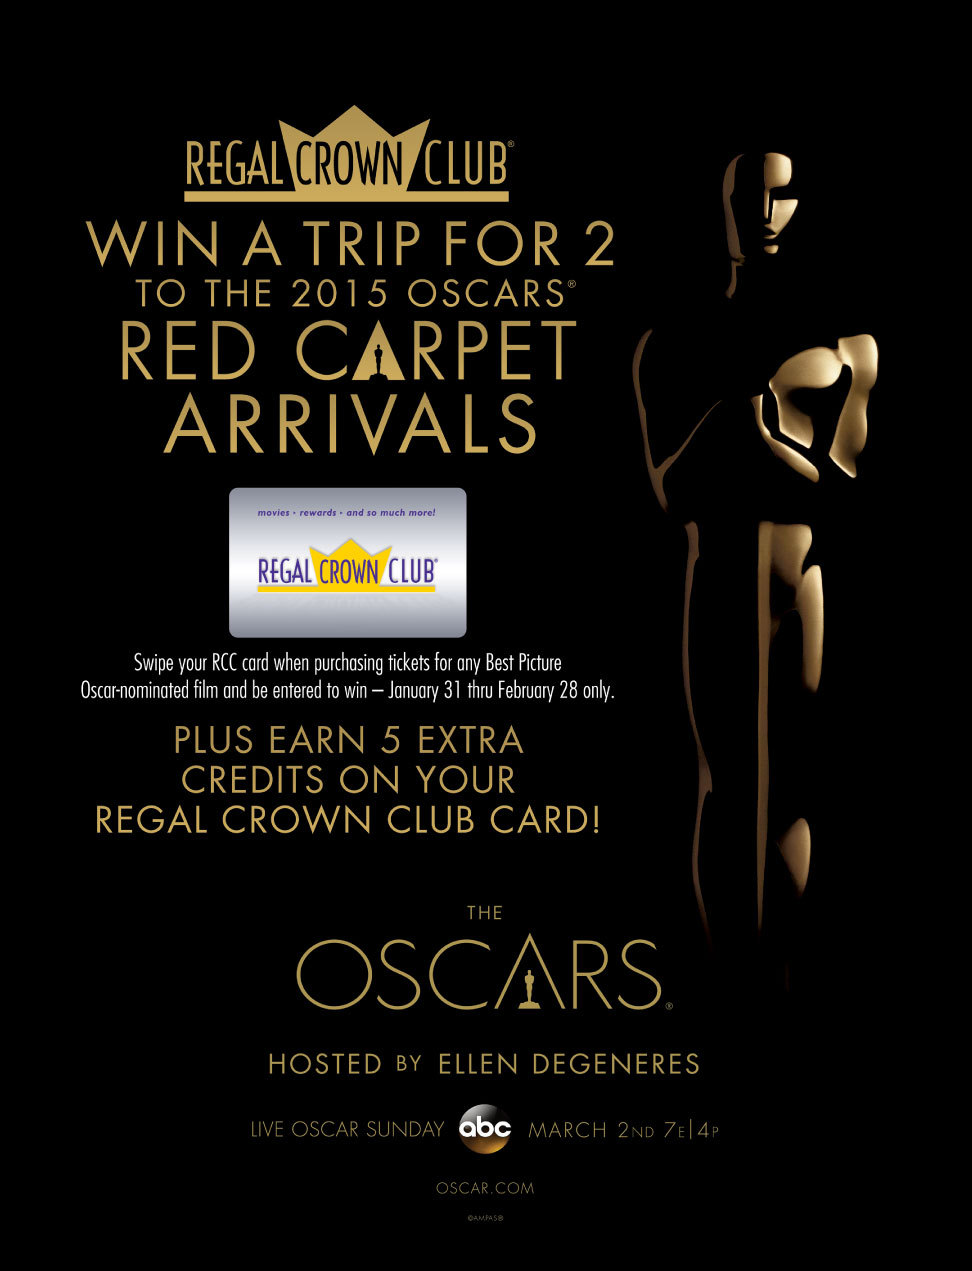 See an Oscar® Best Picture-nominated film at participating Regal Theatres through February 28 to win a trip to the 2015 Red Carpet Arrivals. Image Source: Regal Entertainment Group